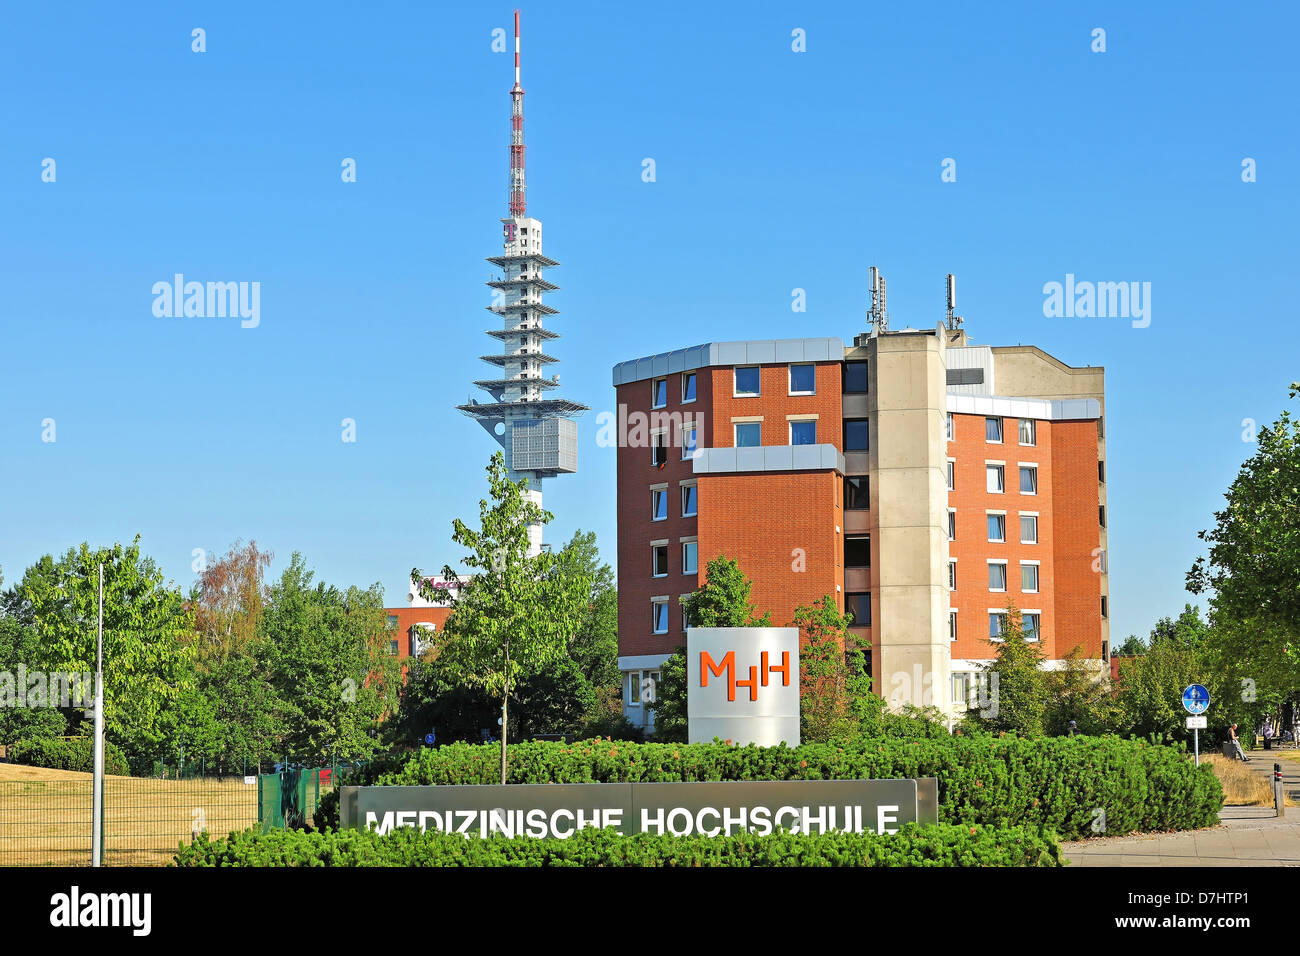 The Medical School in Hanover, Lower Saxony, Germany - Stock Image